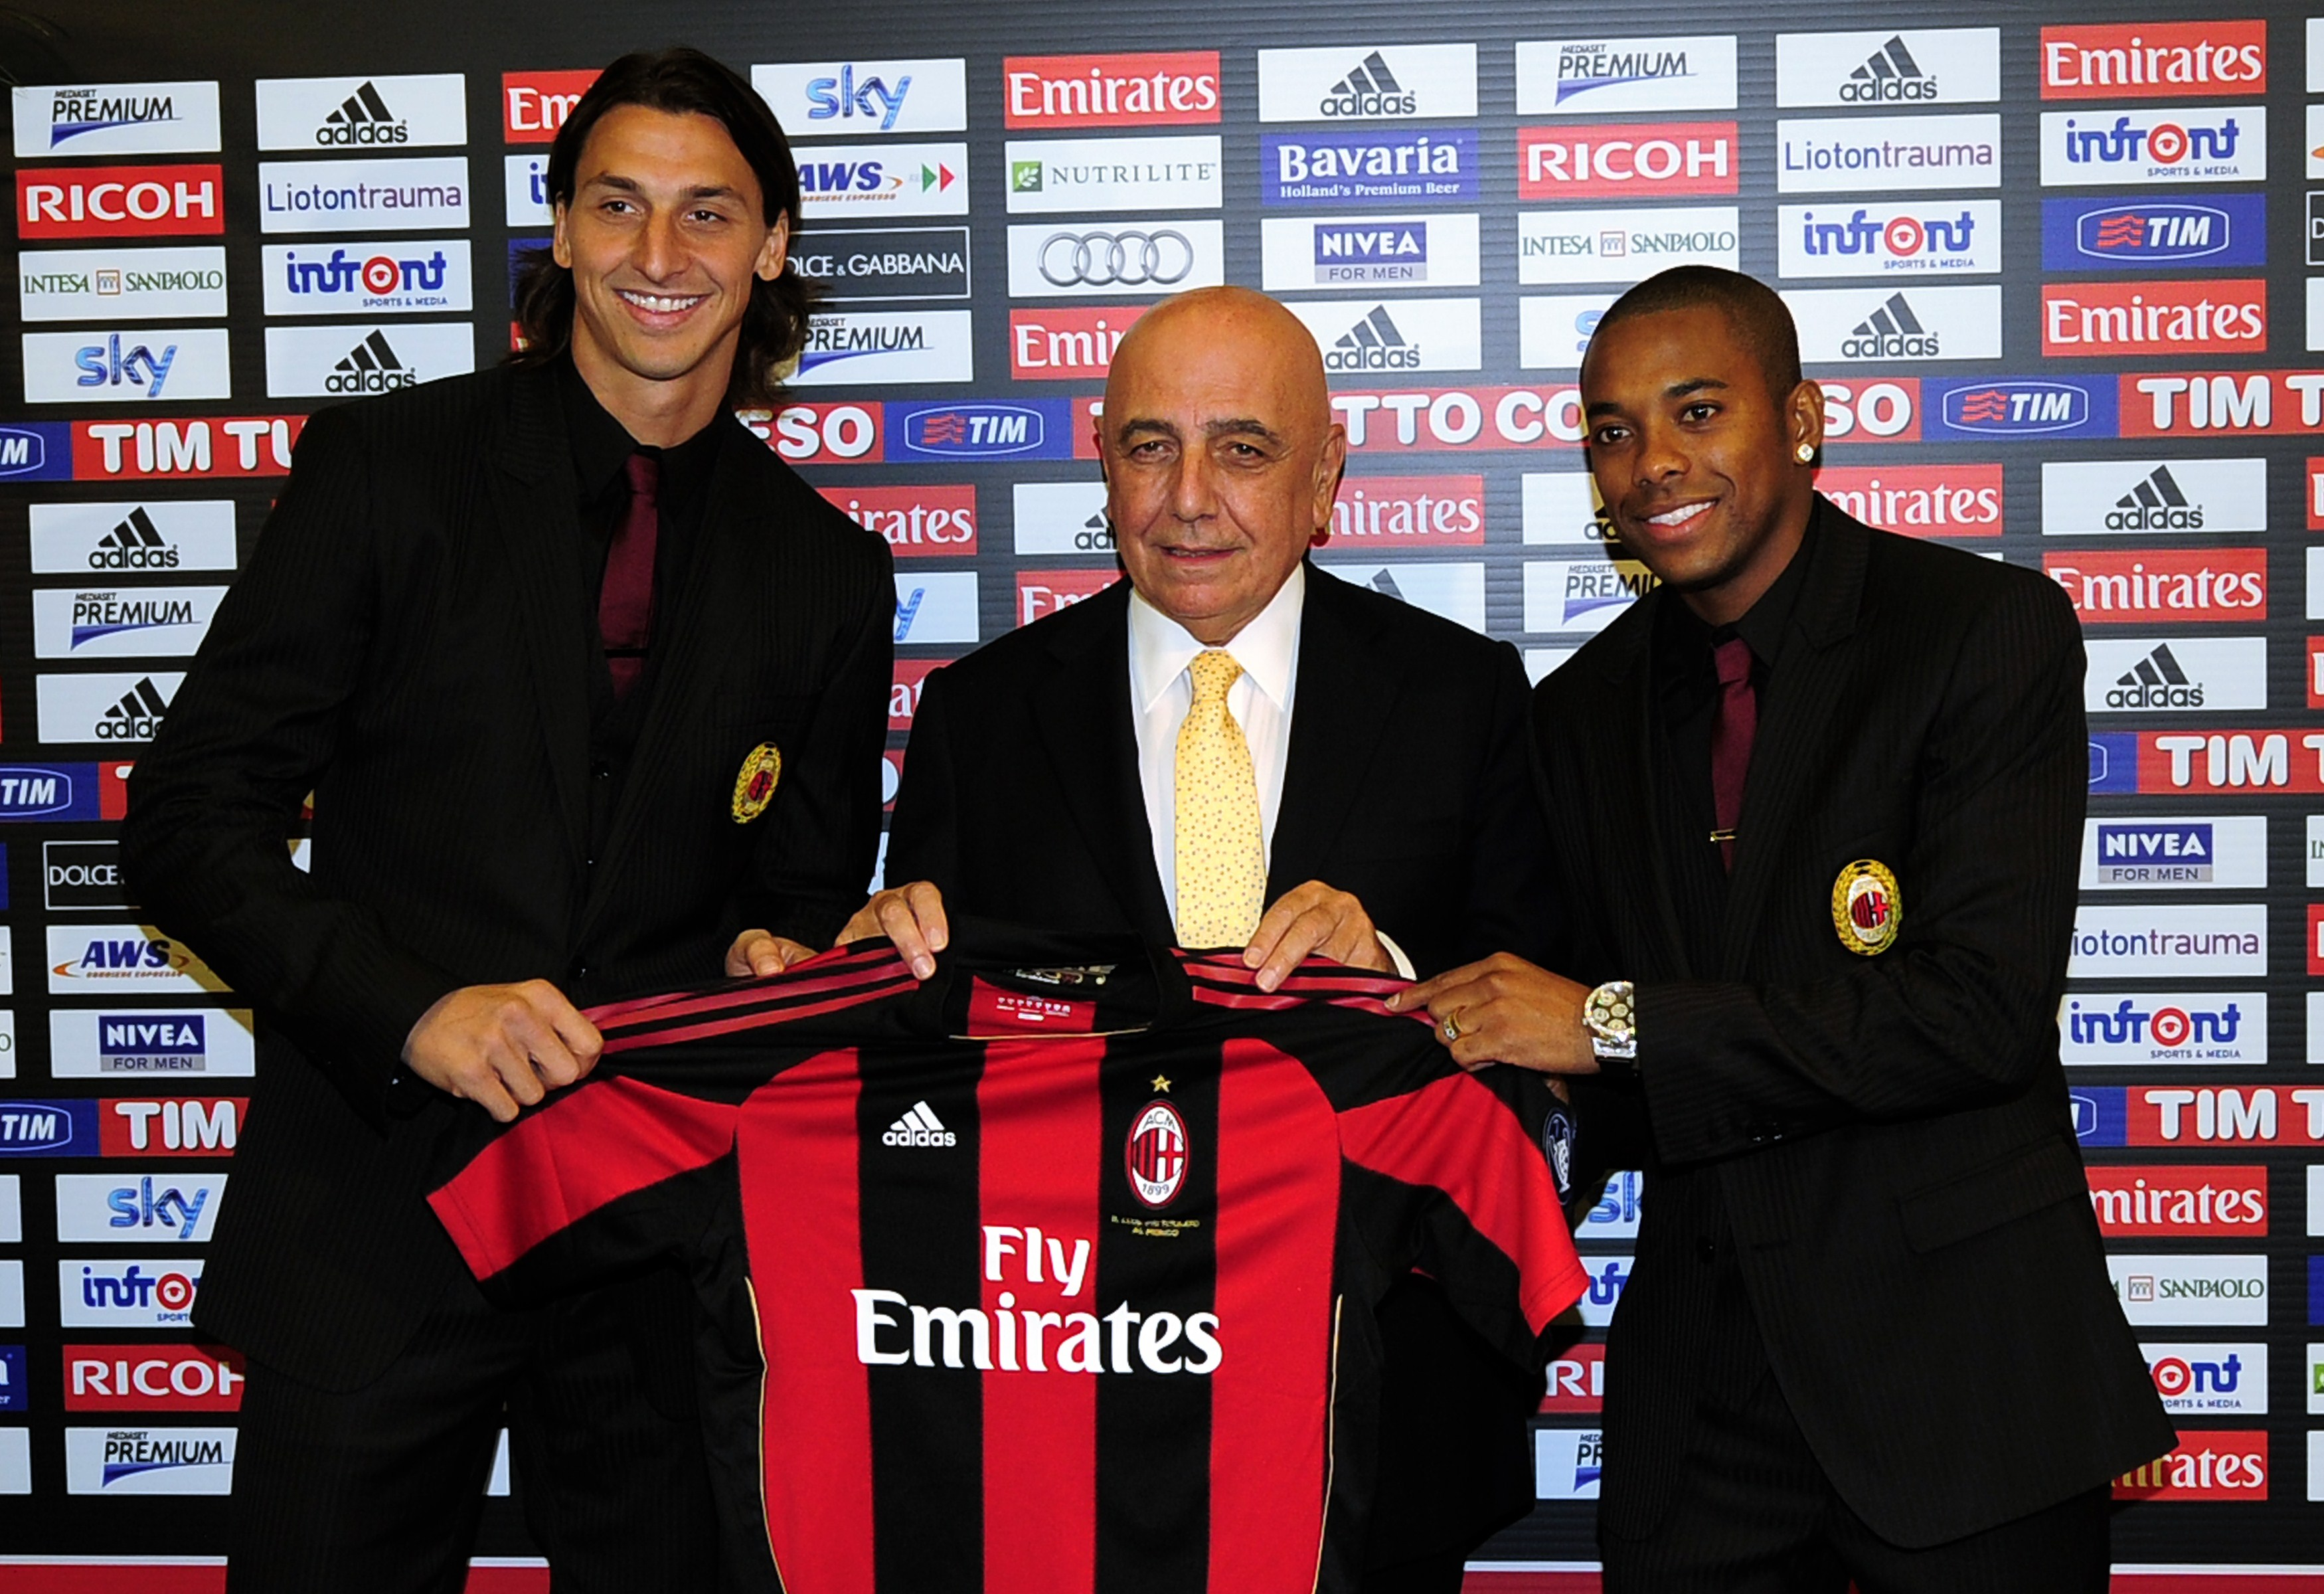 New AC Milan player, Sweden's Zlatan Ibr